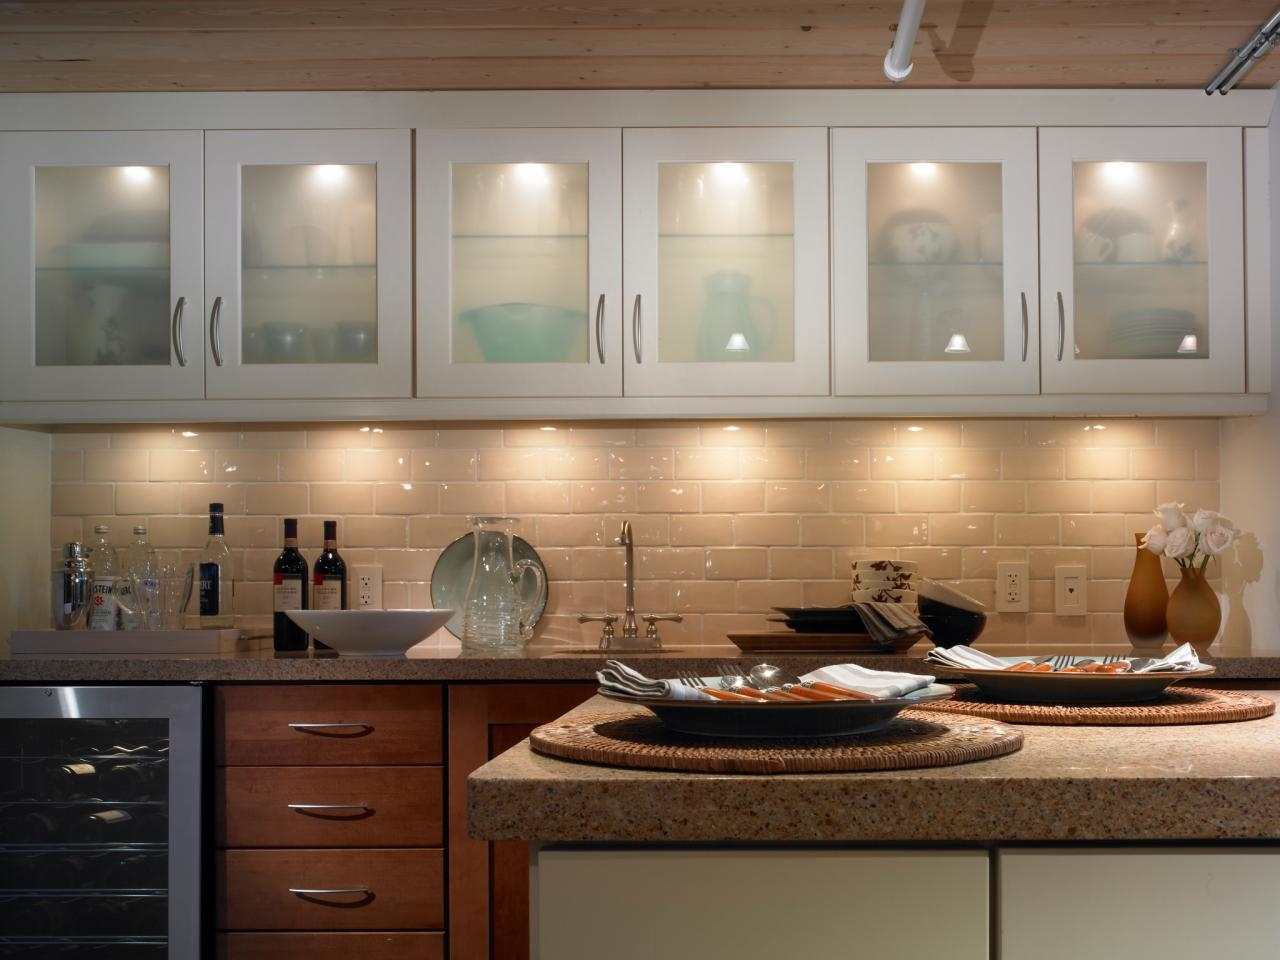 Lighting For Inside Kitchen Cabinets1280 X 960